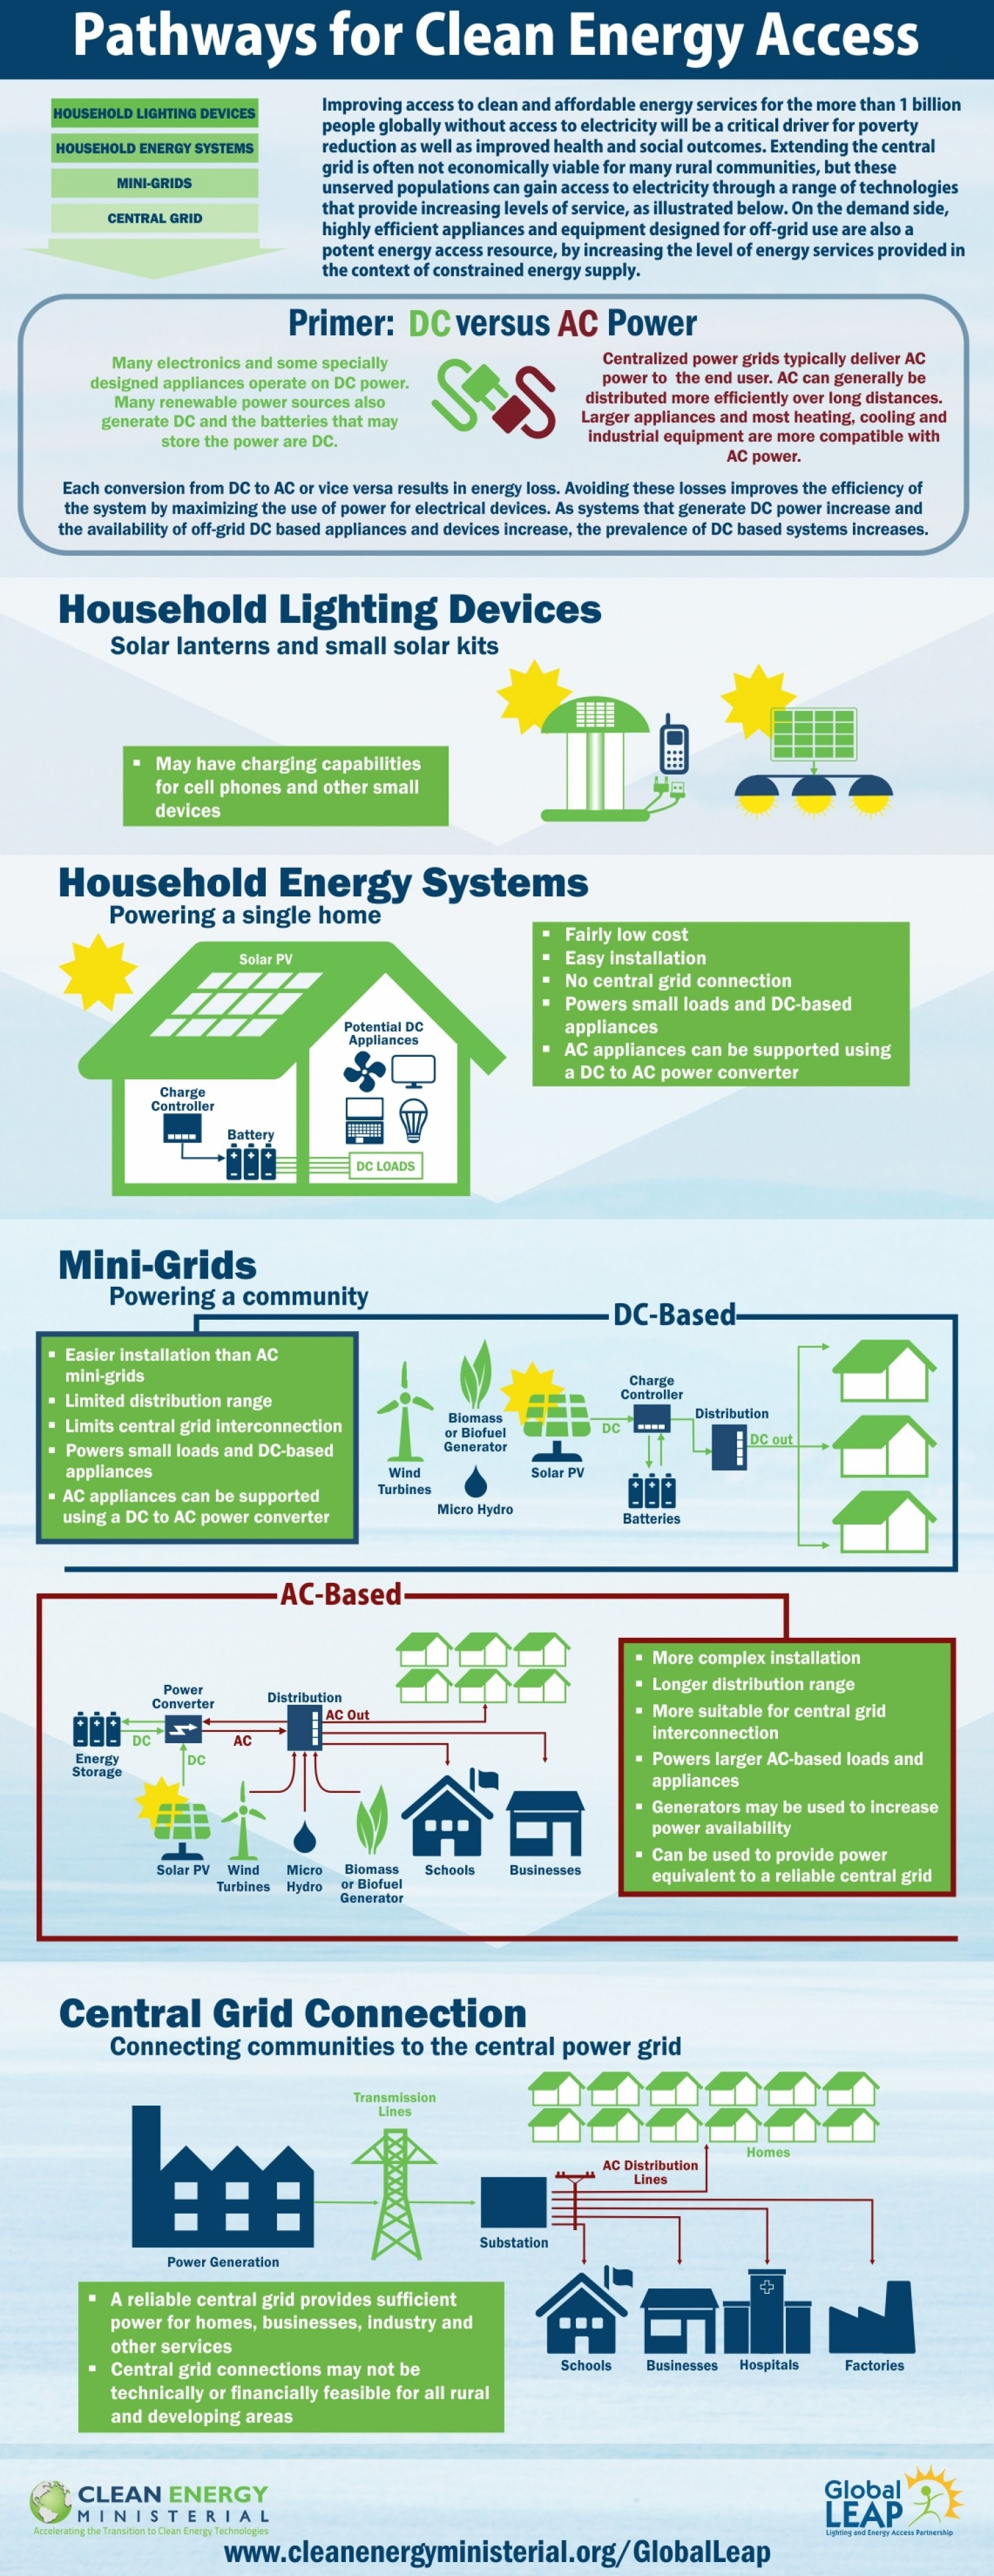 Pathways for clean energy access infographic